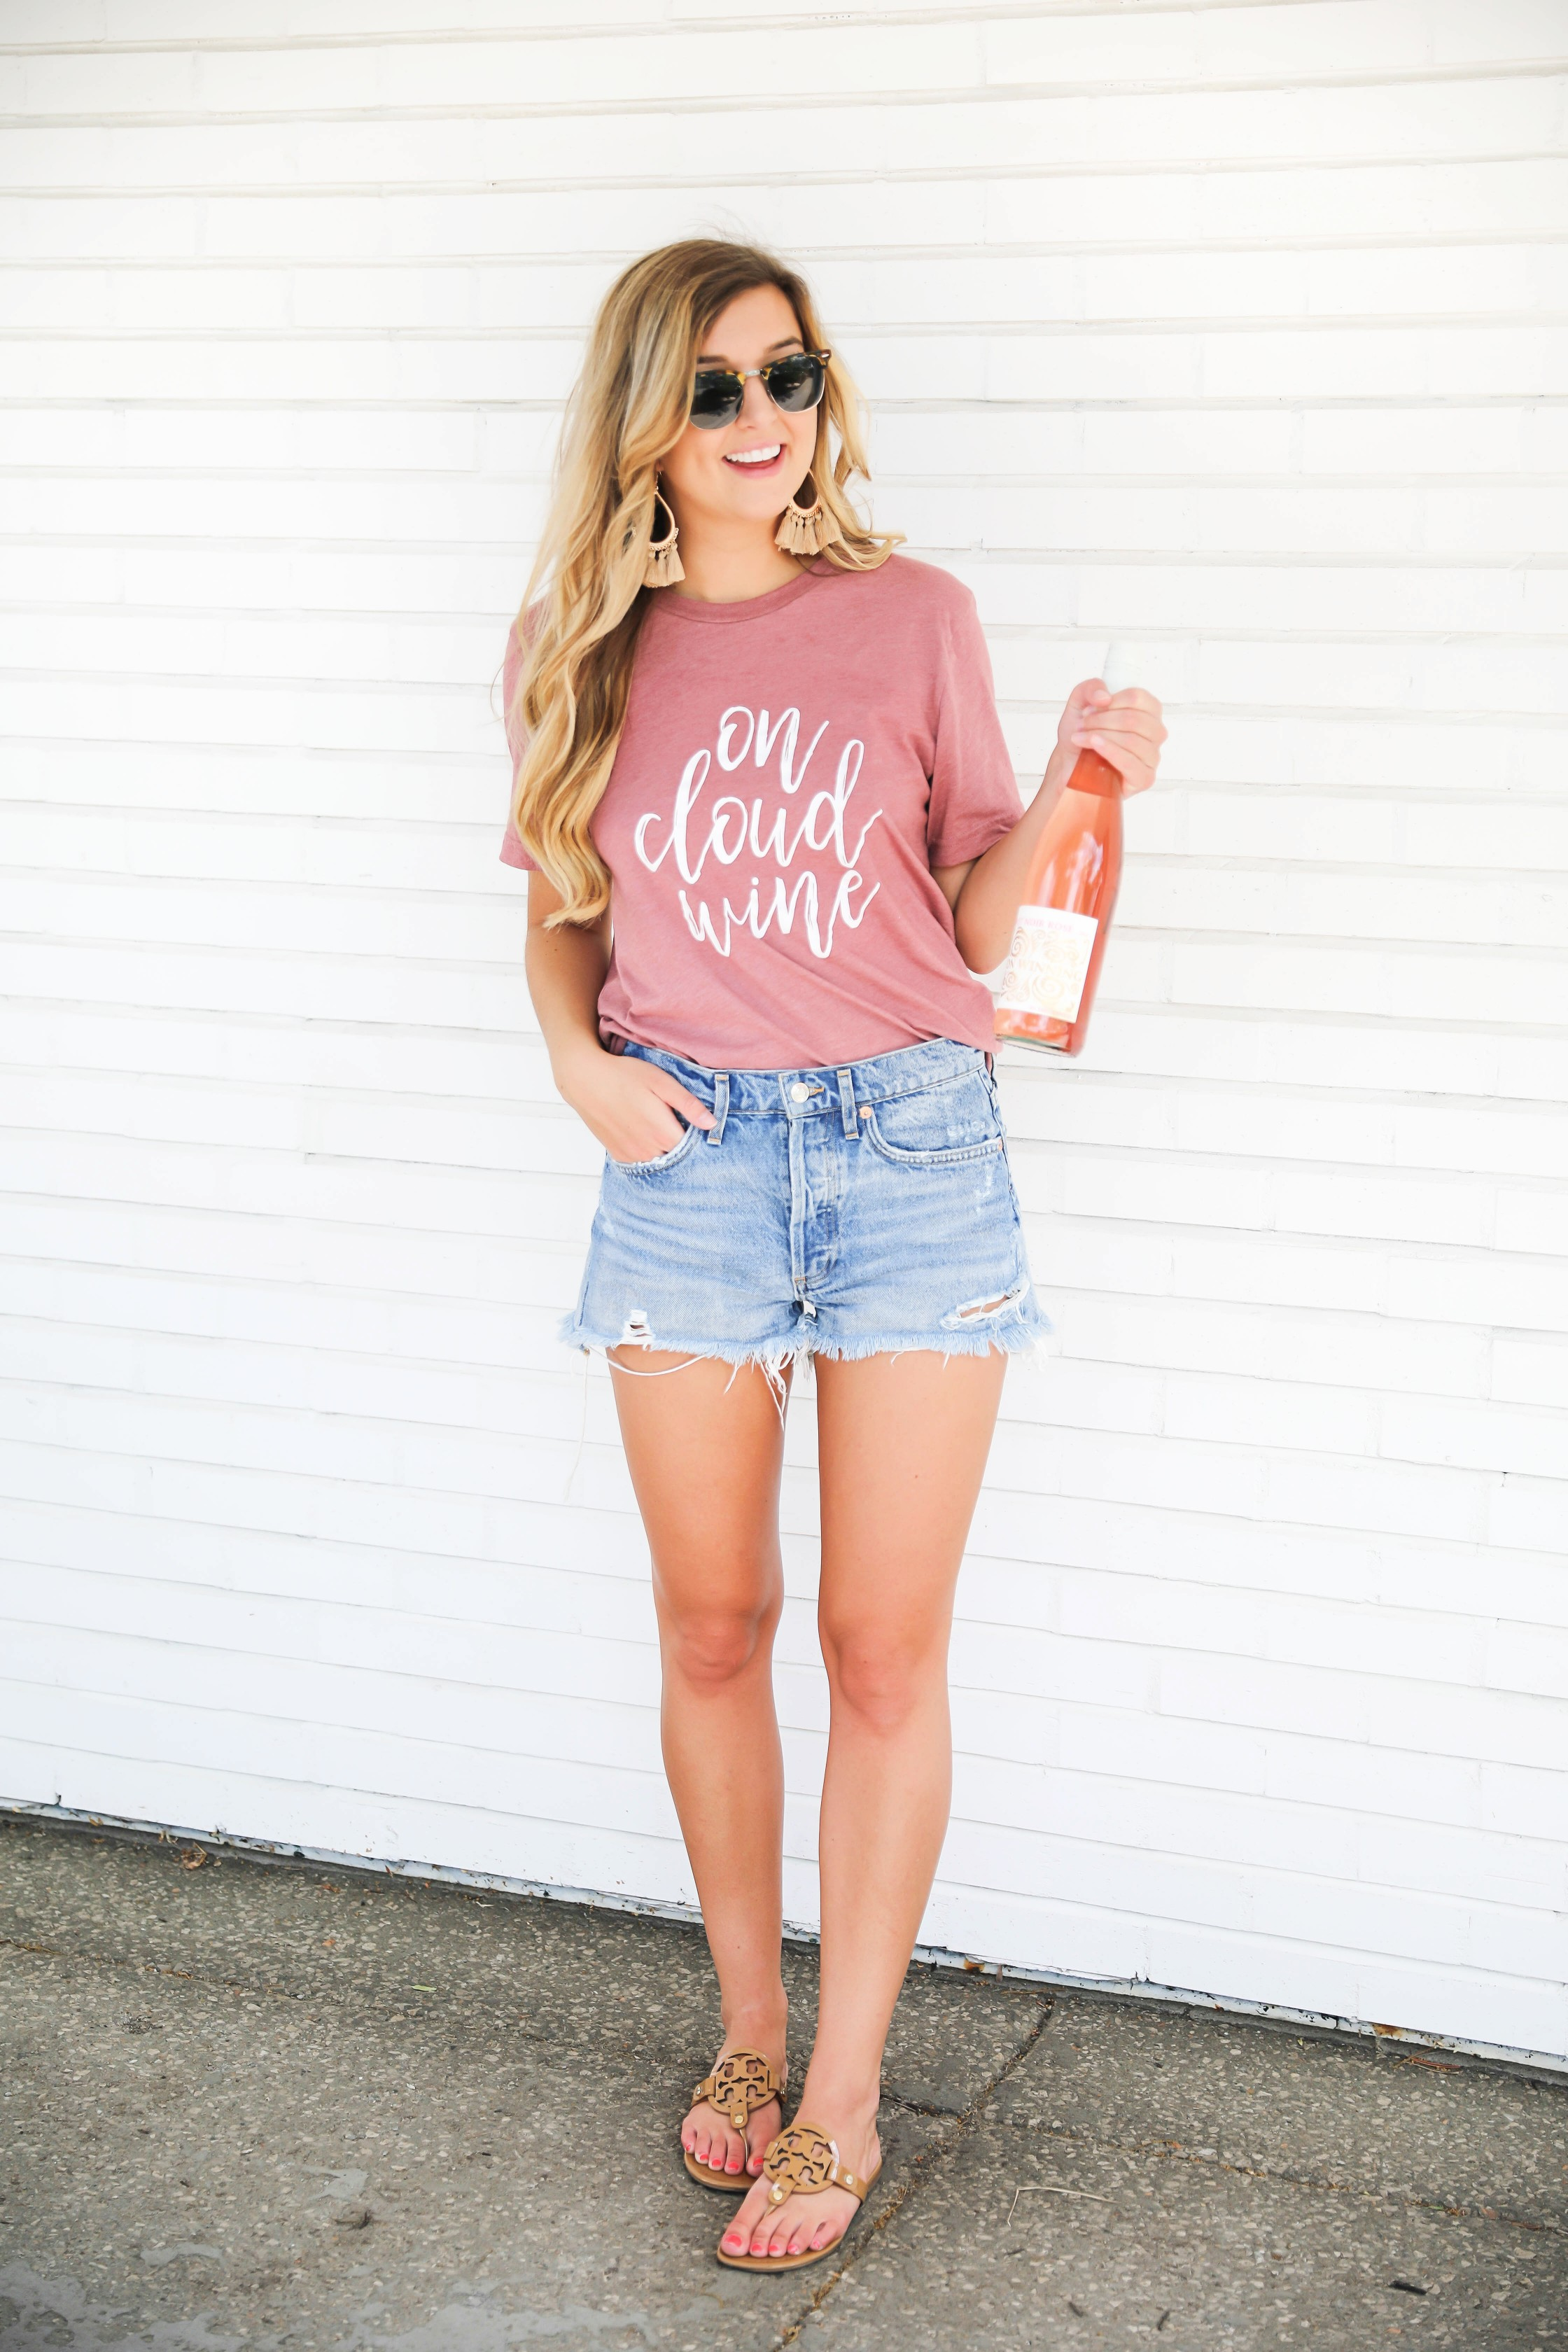 National Rosé Day 2018! I love this on cloud wine tshirt! Wine tees are my favorite! I paired it with the best ripped denim shorts in the world! Get the details on fashion blog daily dose of charm by lauren lindmark